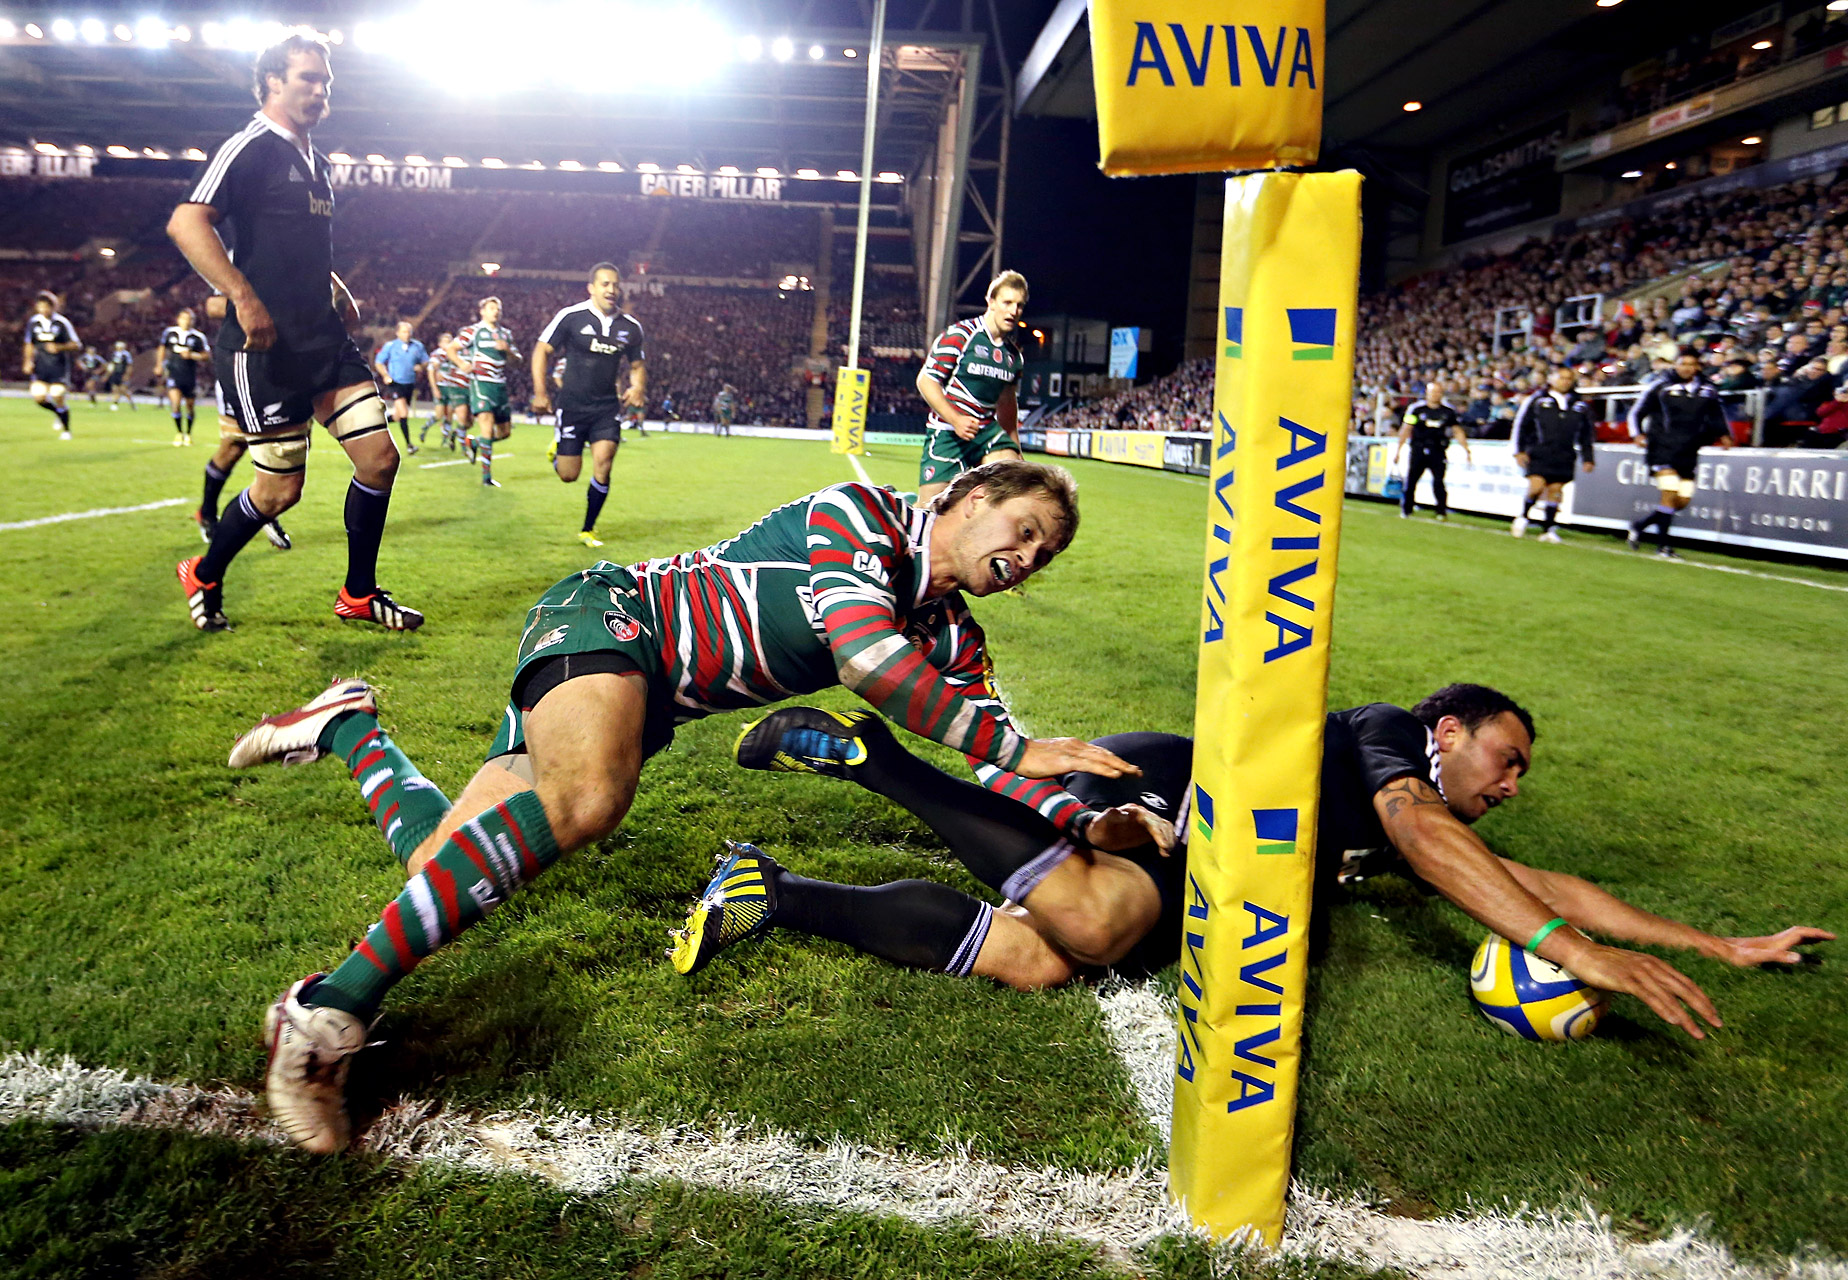 Leicester Tigers and Maori All Blacks